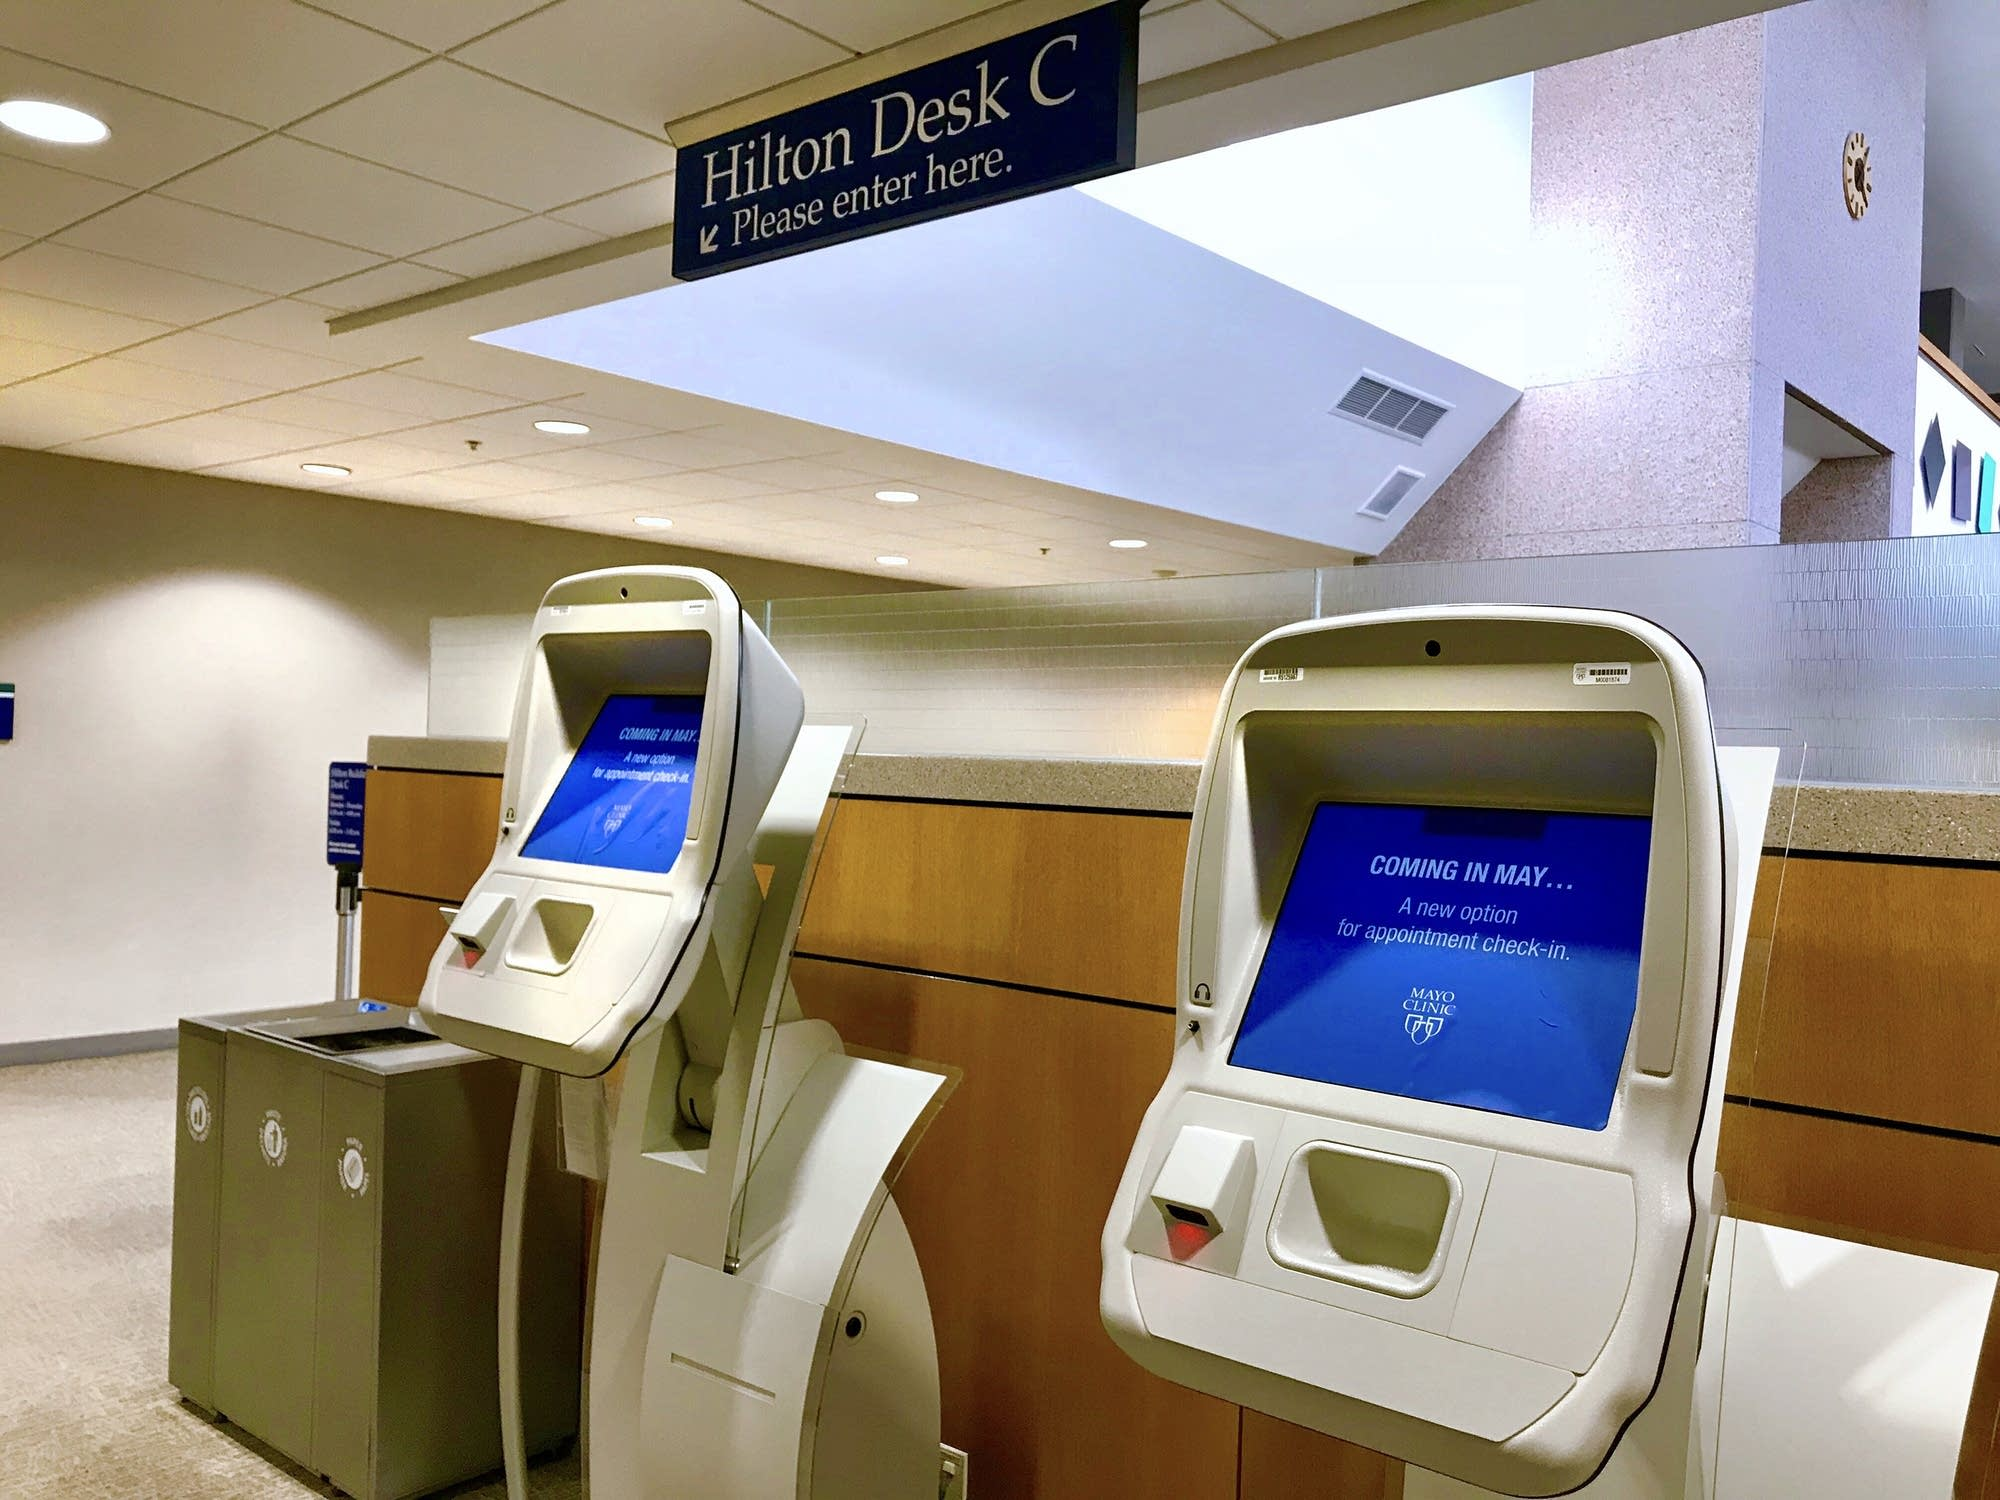 A feature of the patient record keeping system includes digital check-in.